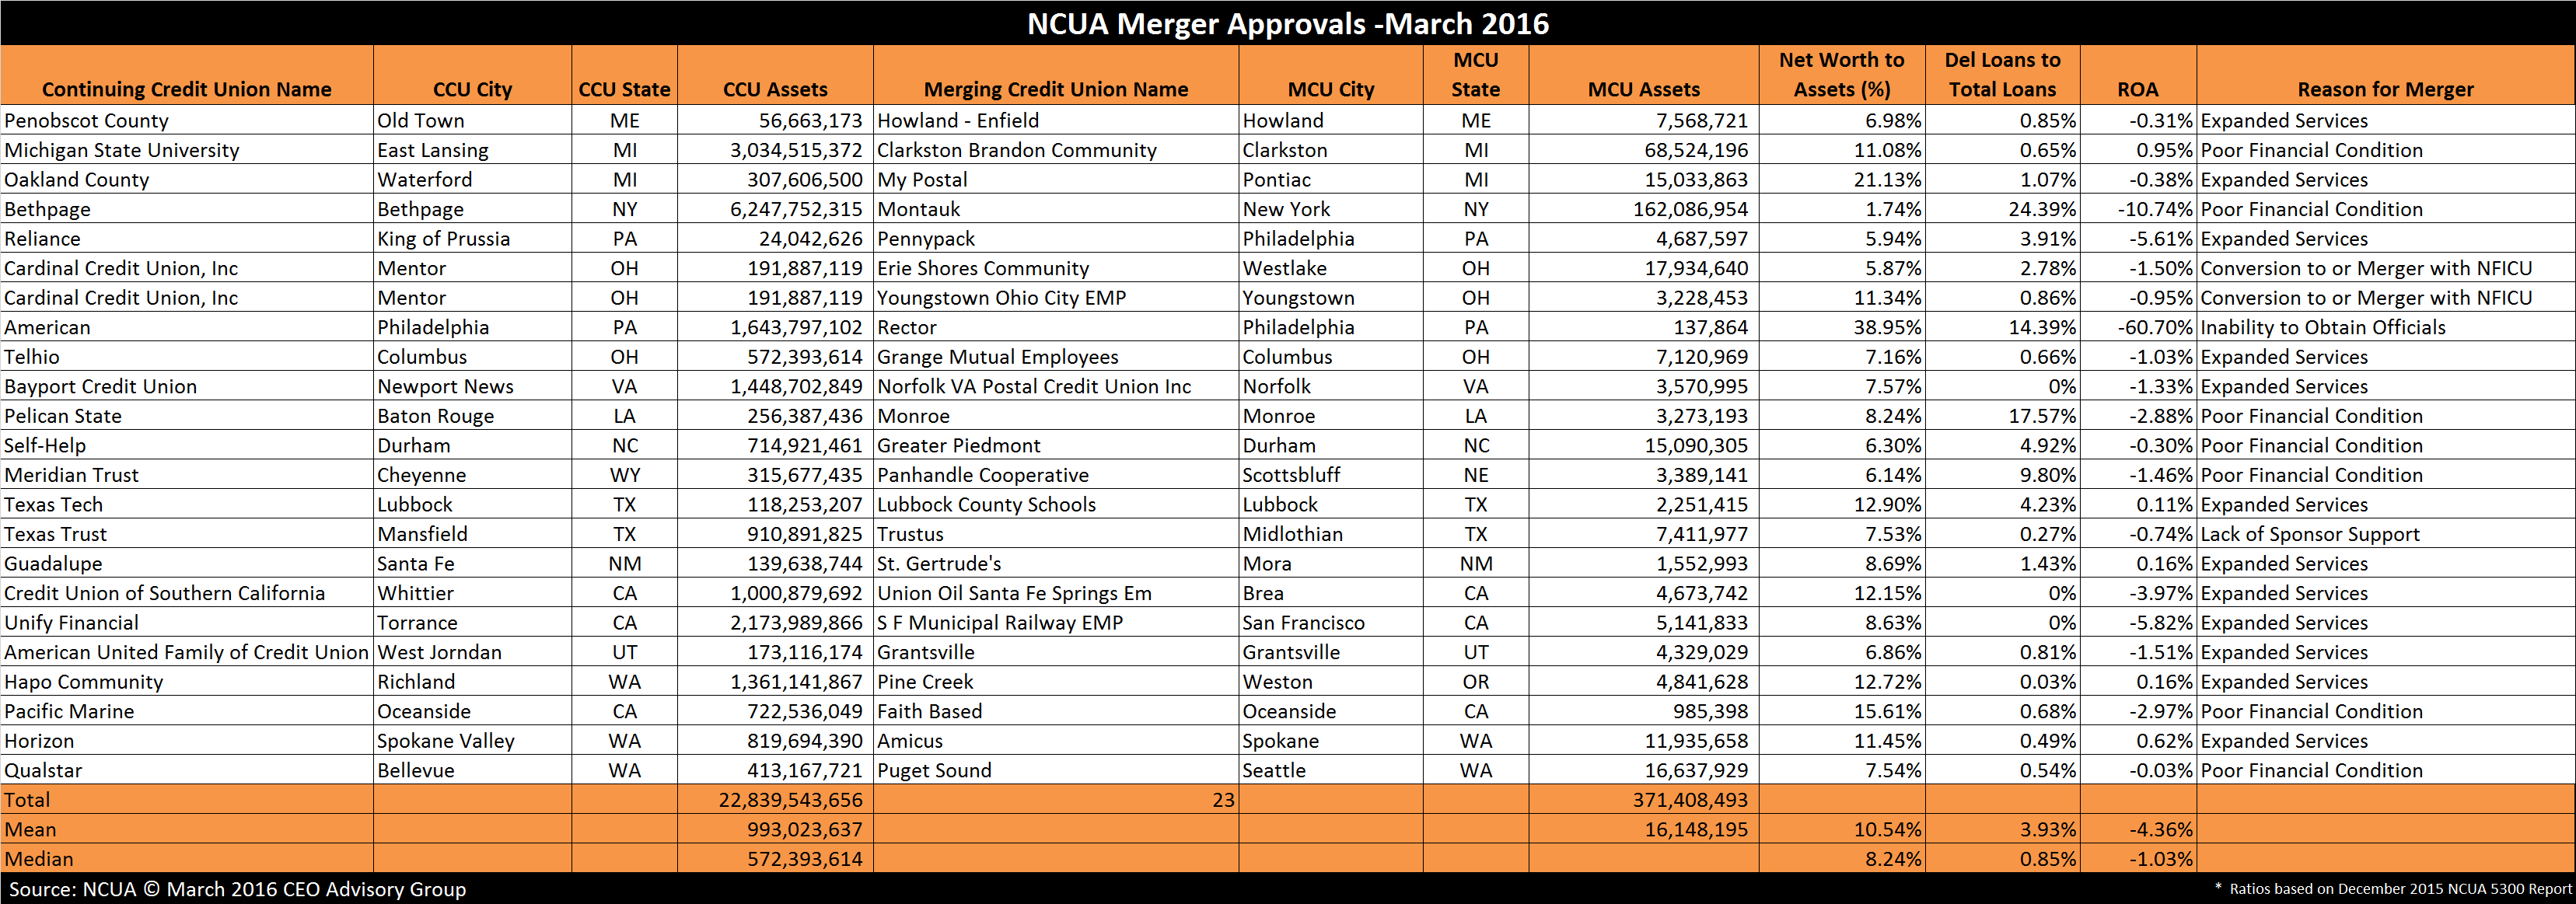 Credit-Union-Merger-Approvals---March-2016